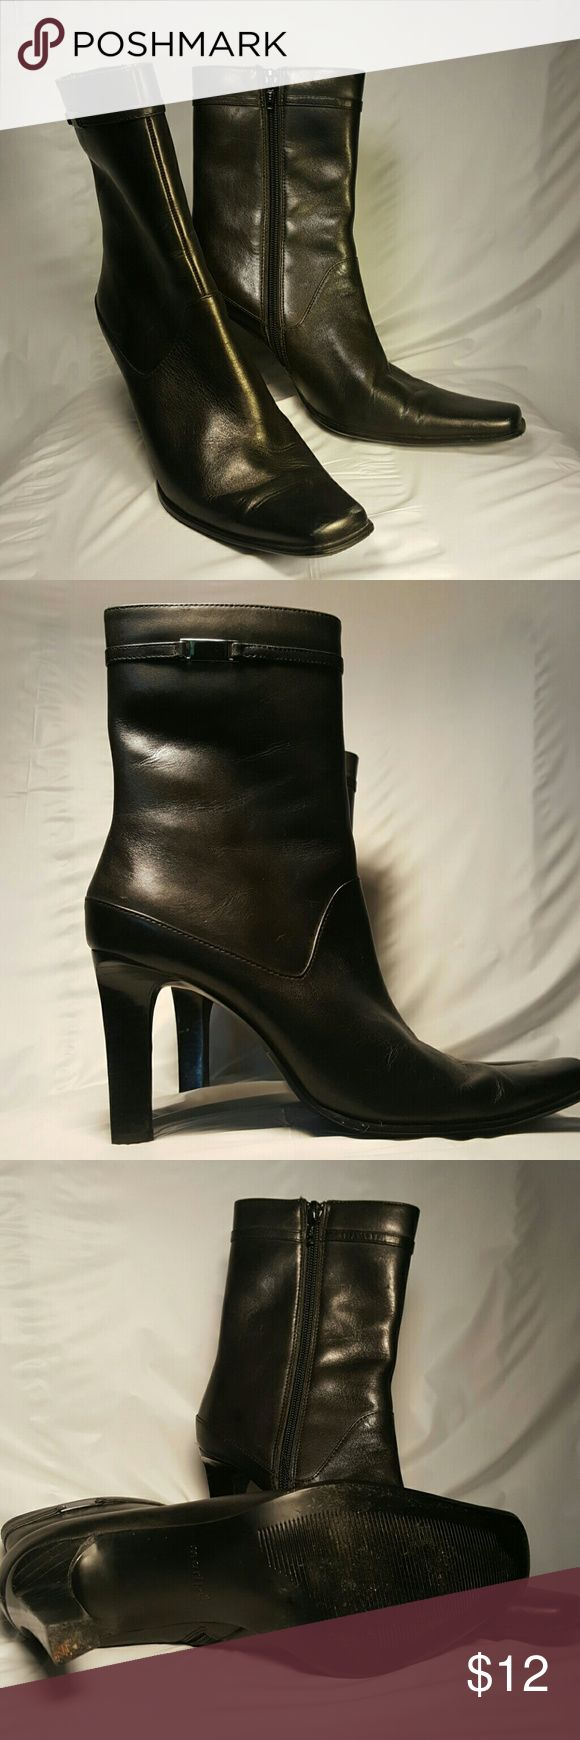 Ladies black ankle boots Maripe ankle boots, leather upper with side zip. Maripe Shoes Ankle Boots & Booties